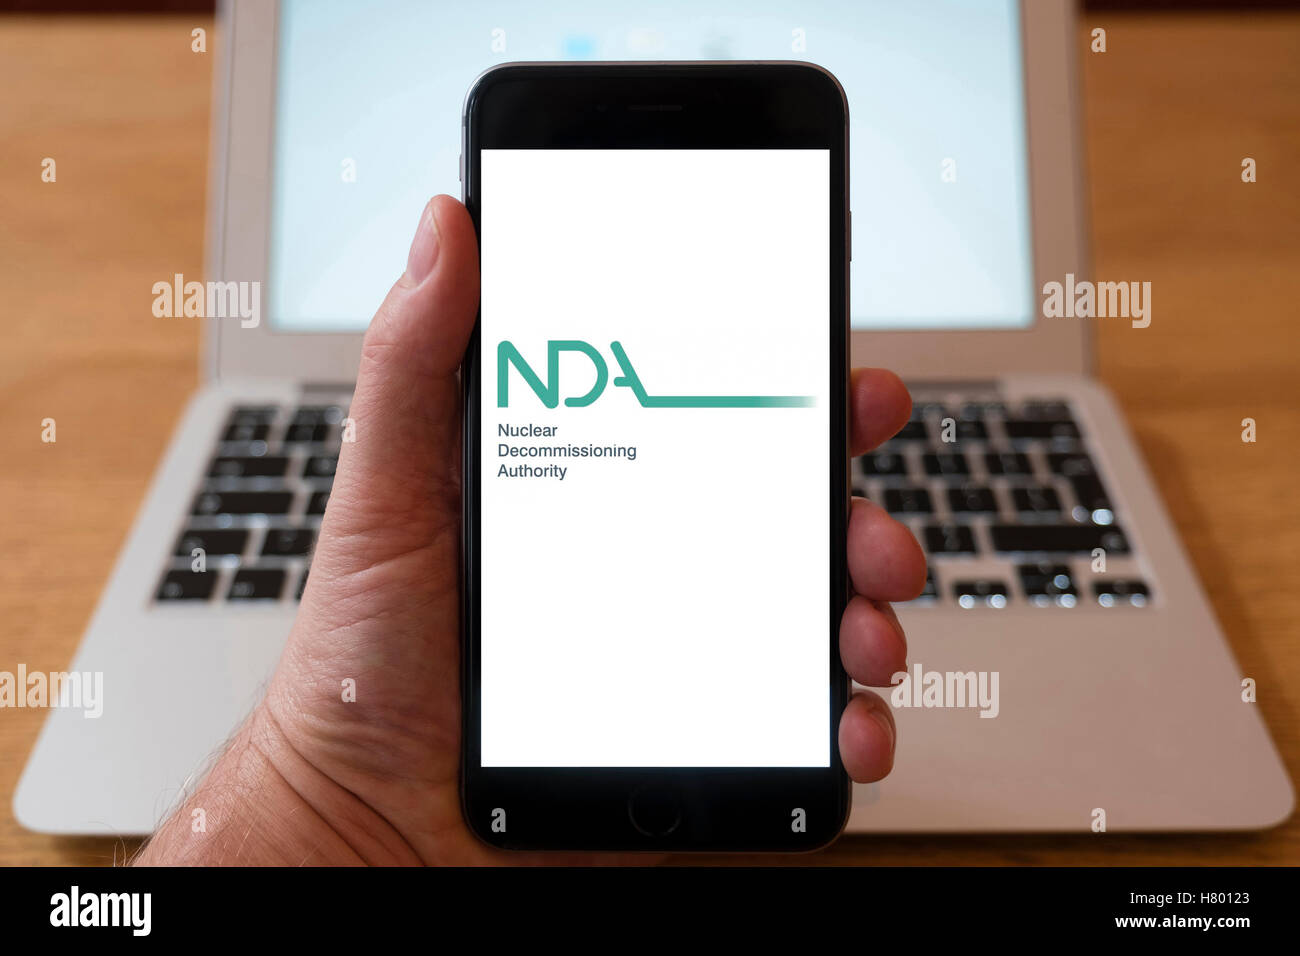 Using iPhone smartphone to display logo of Nuclear Decommissioning Authority in the UK - Stock Image